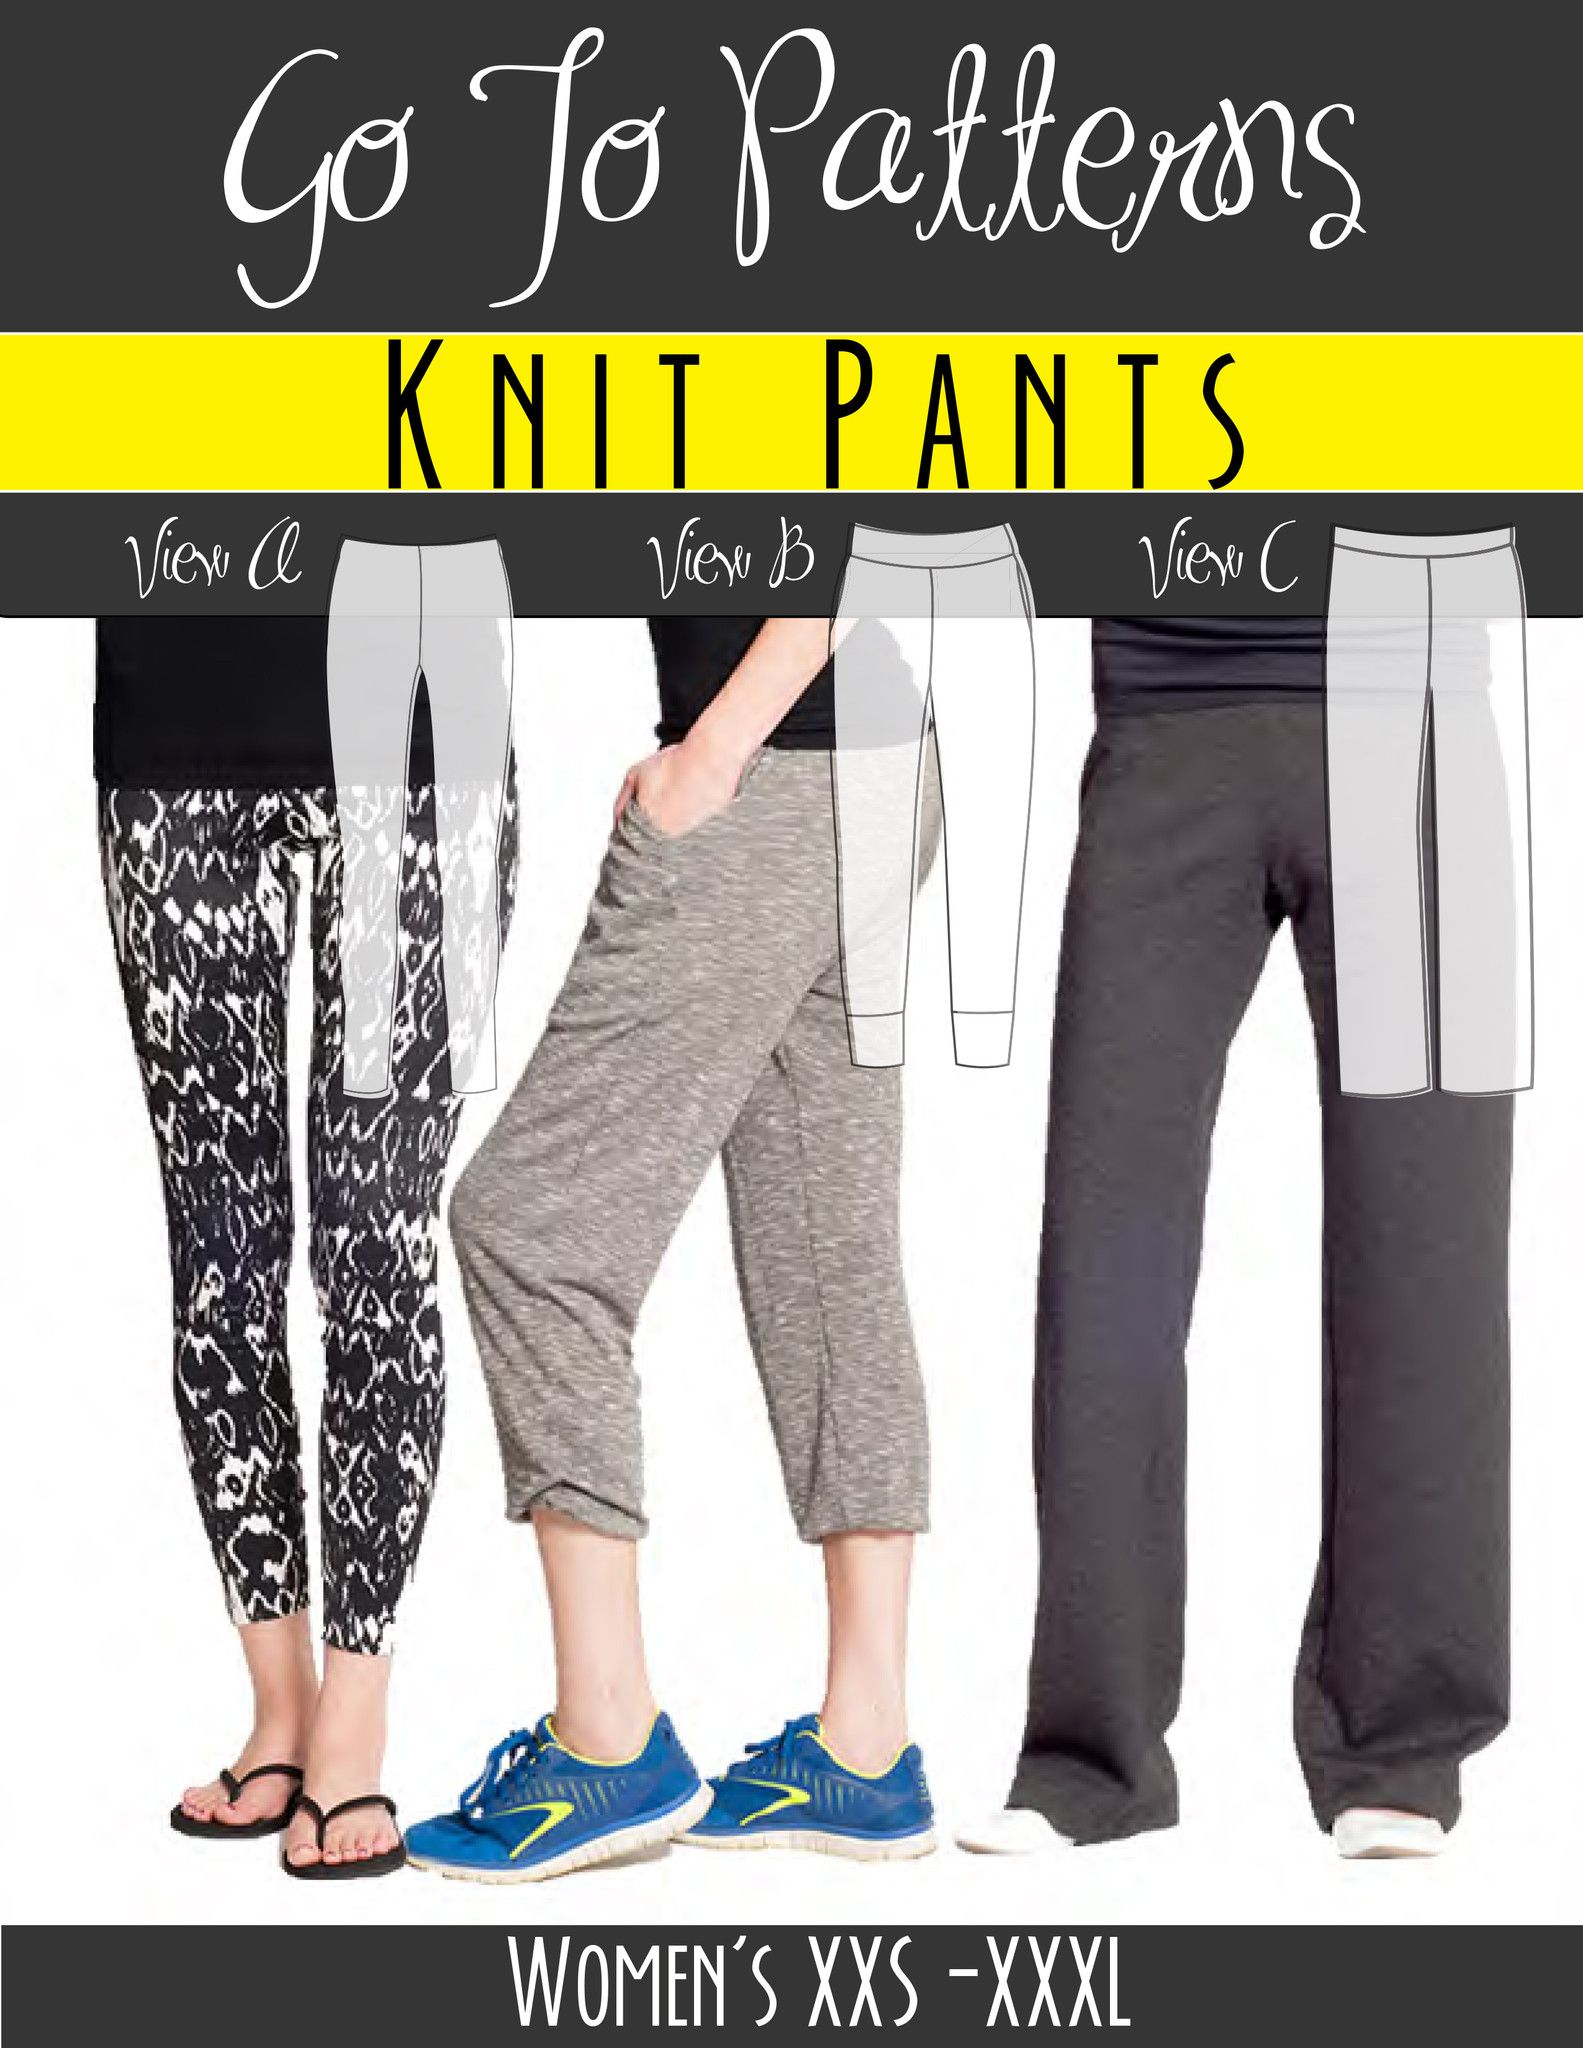 Go To Knit Pants for women | Pinterest | Girl toys, Knit pants and ...